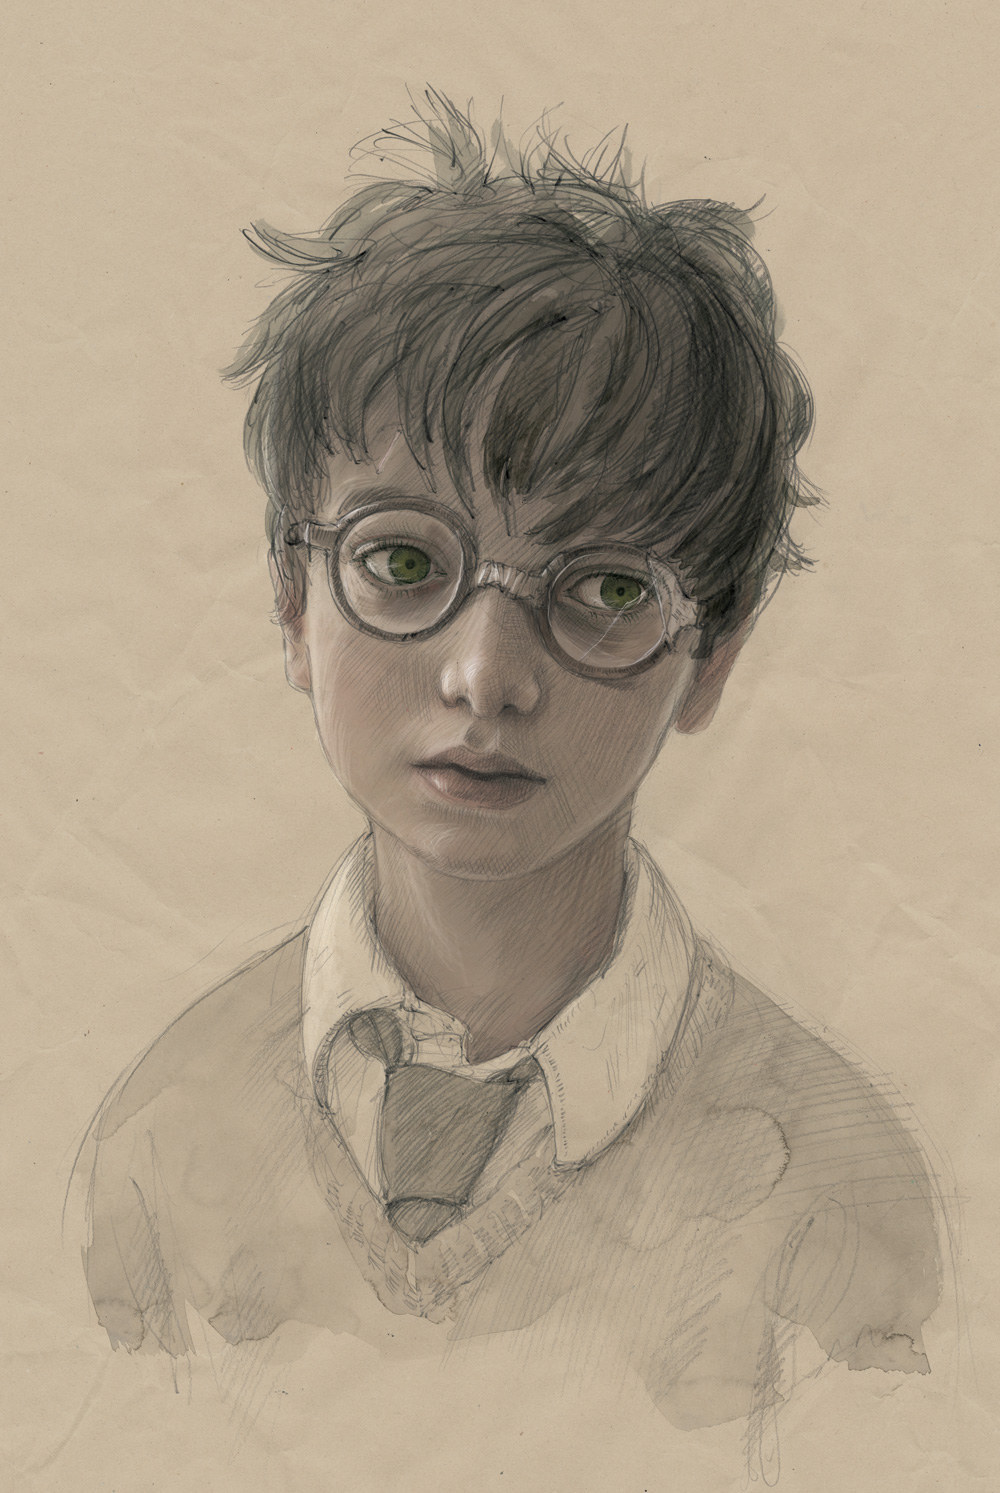 """Here Are Brand-New Images From The Illustrated Edition Of """"Harry Potter"""""""